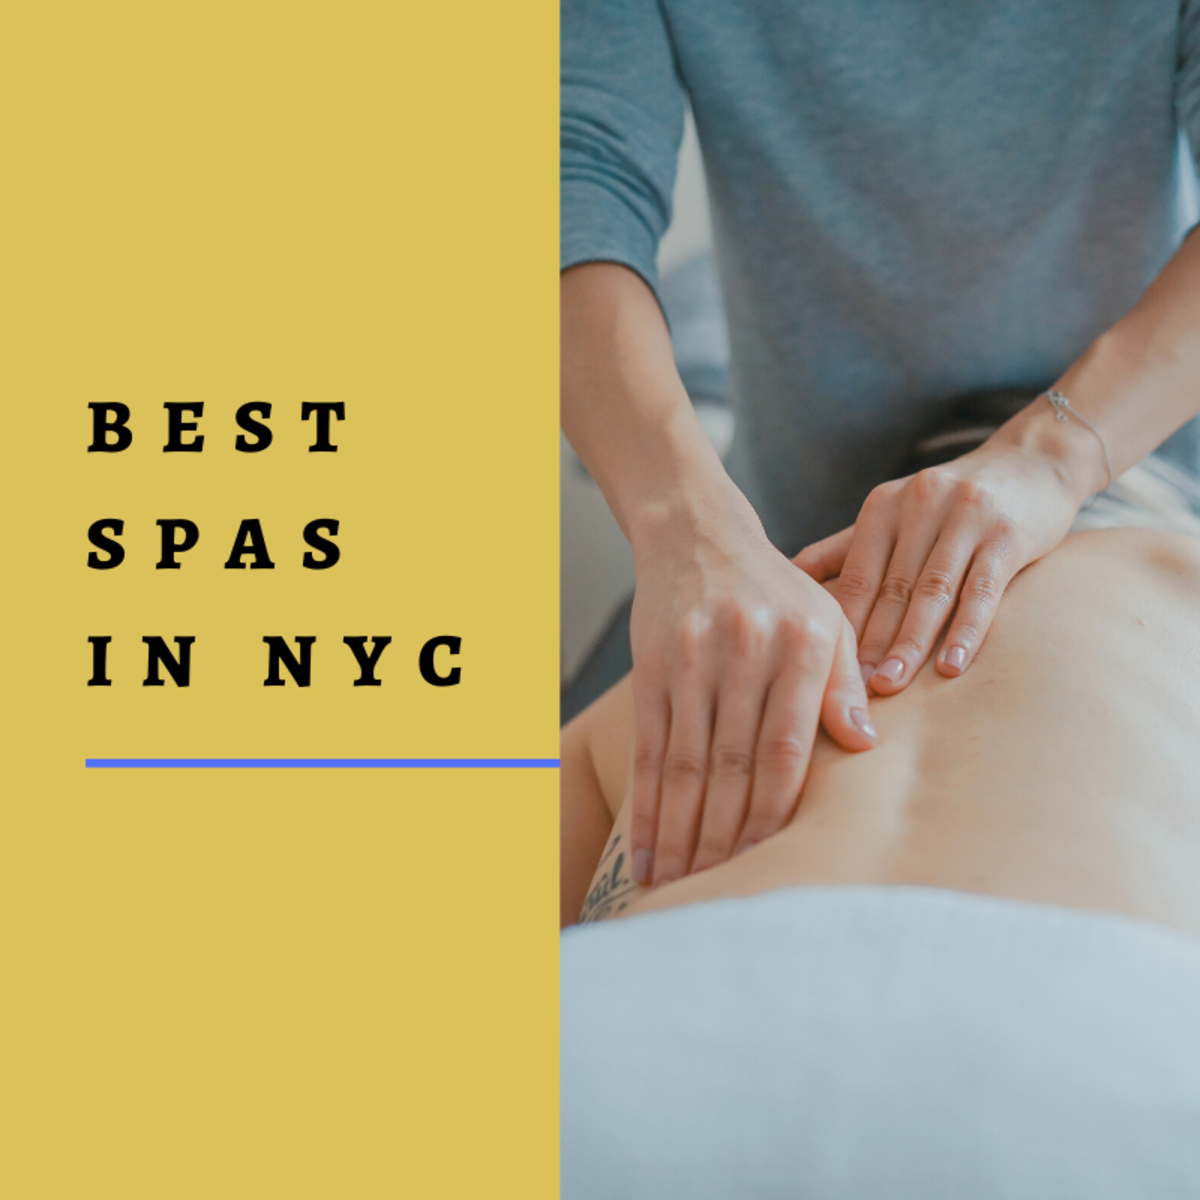 5 Best Spas in NYC